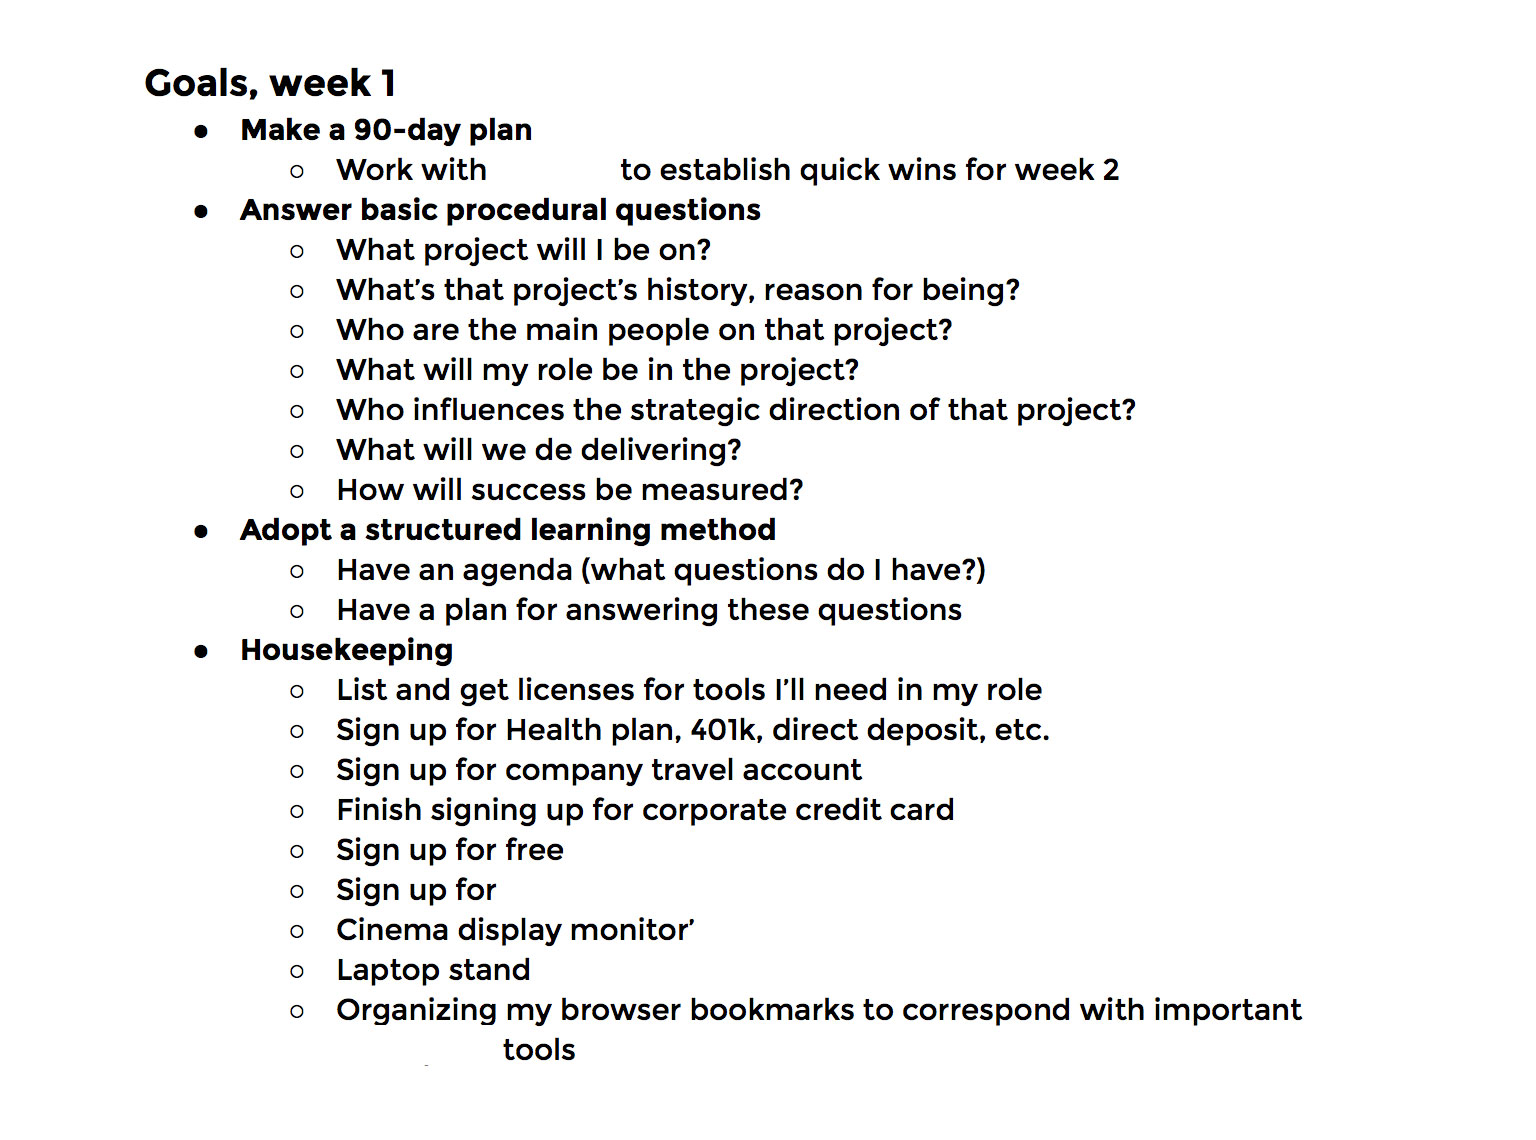 successful career transitions the first week in a new job week 1 is filled basic information about people projects and processes creating my 90 day plan